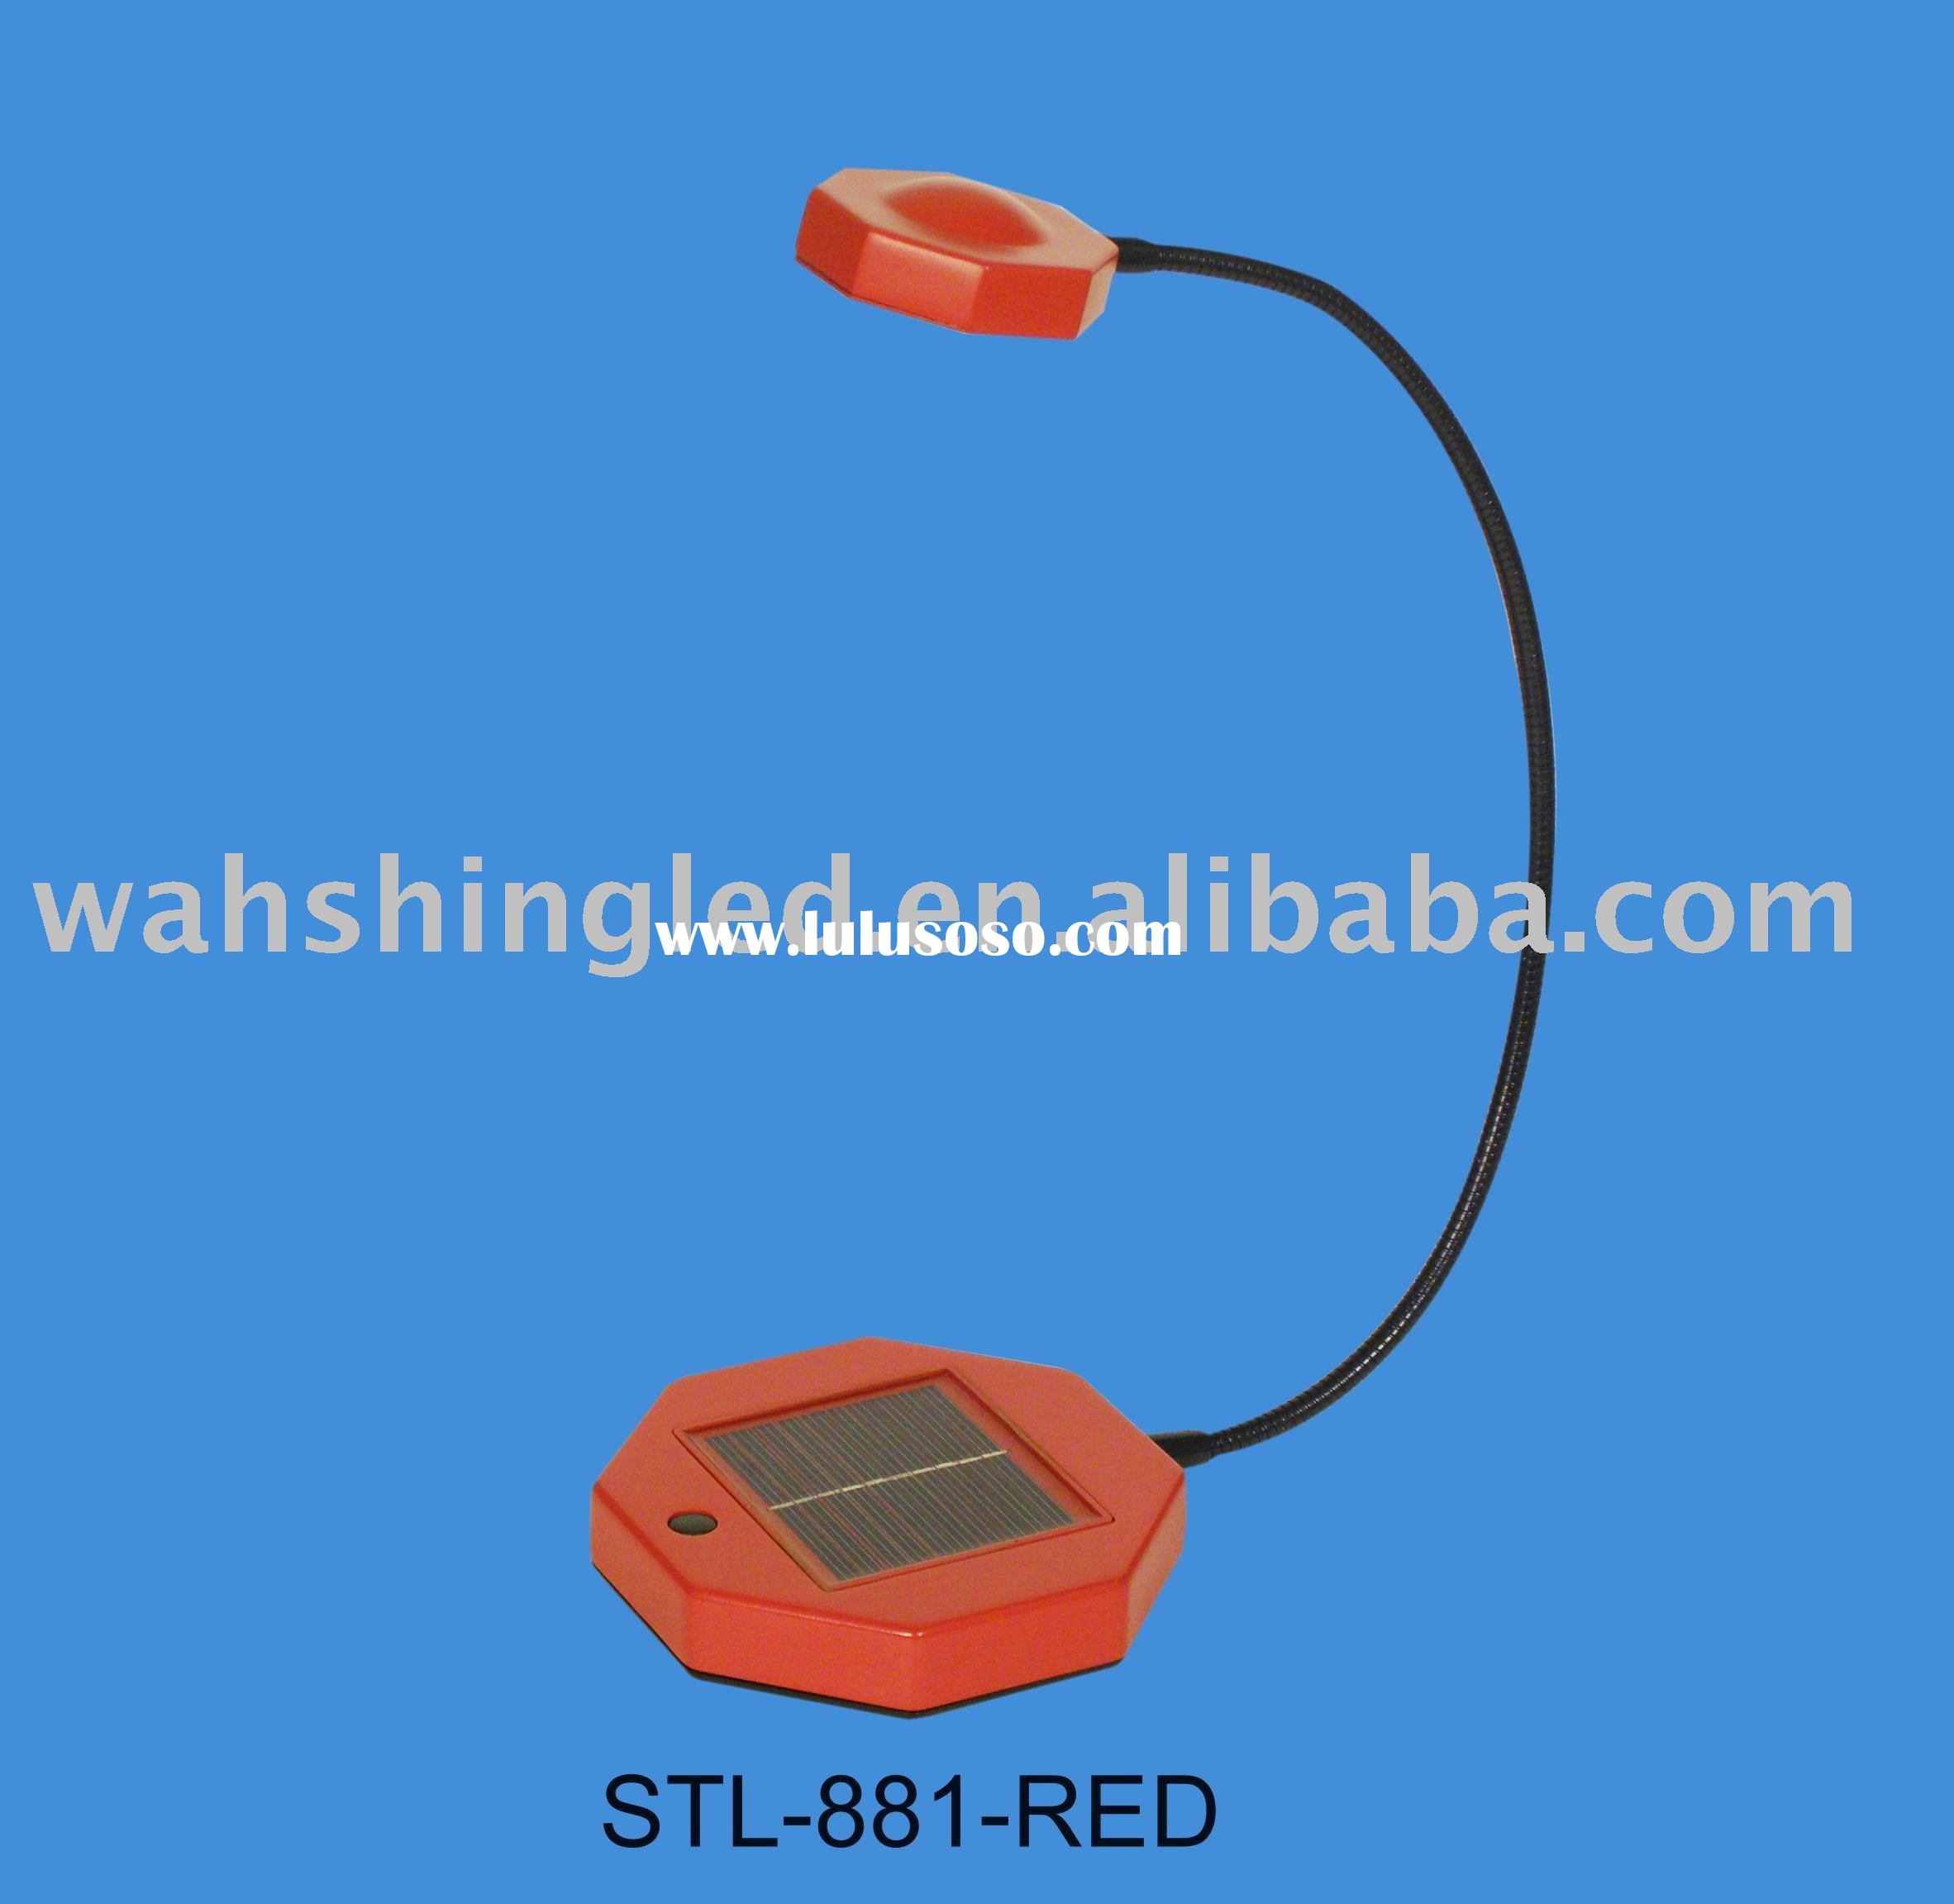 LED solar table lamp, LED desk lamp